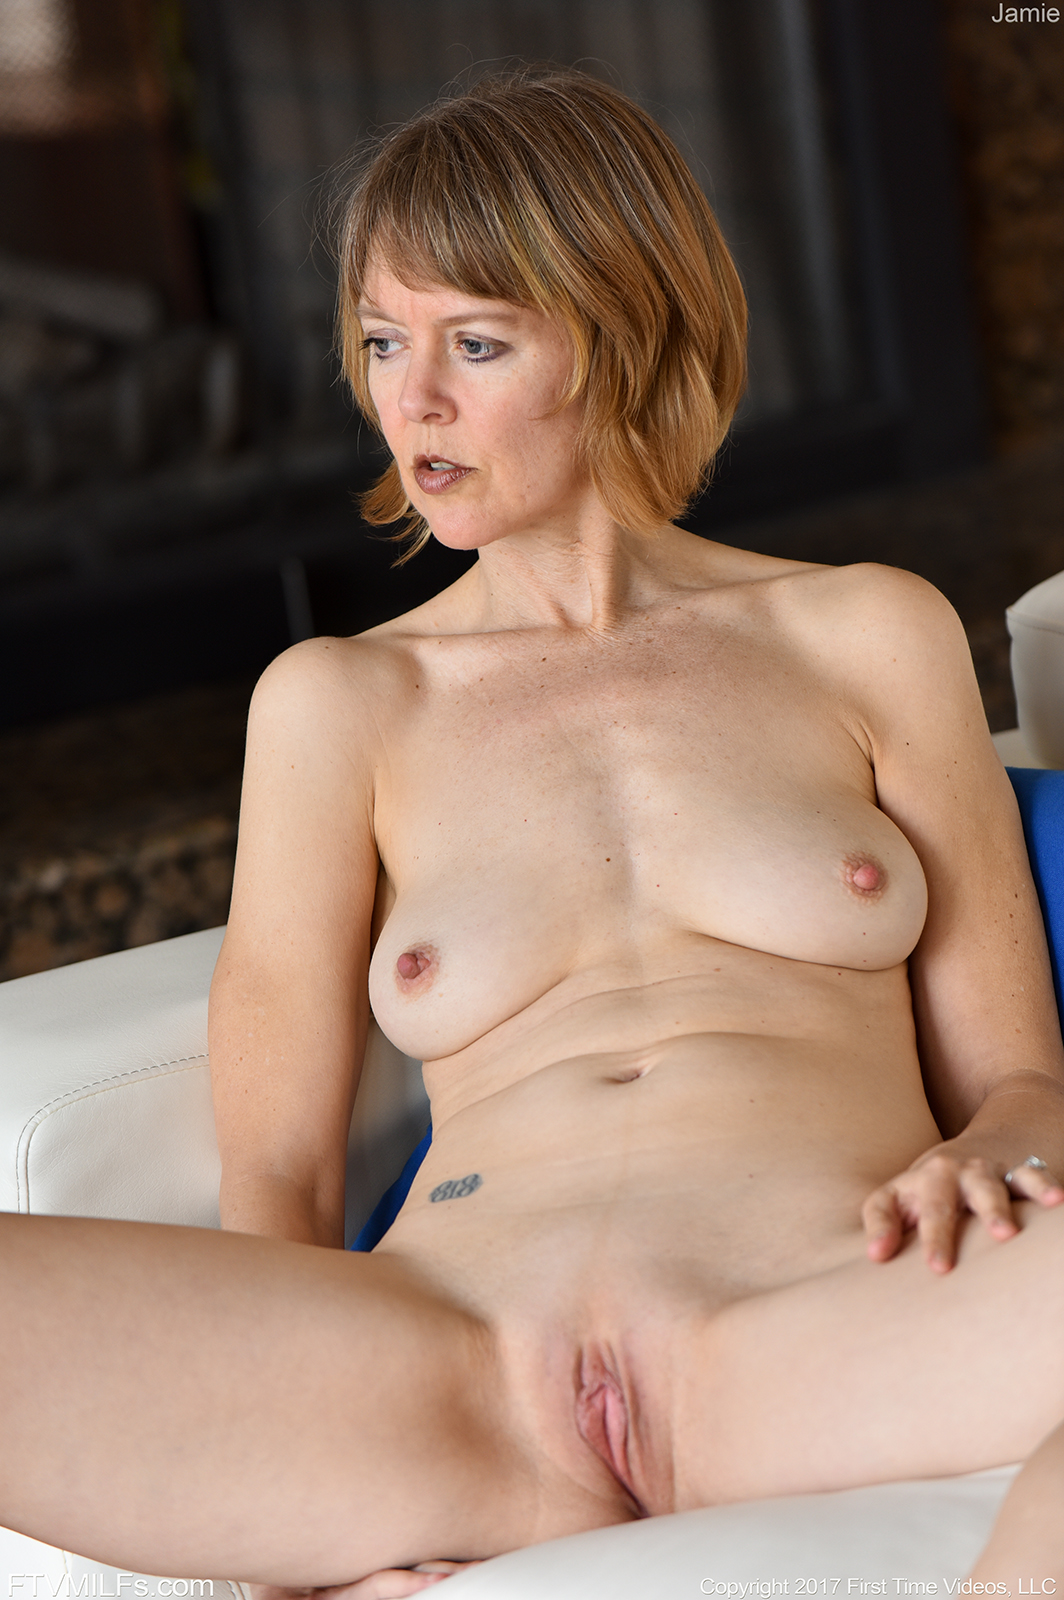 50 plus skinny milf doctor makes 11 inch house call 8